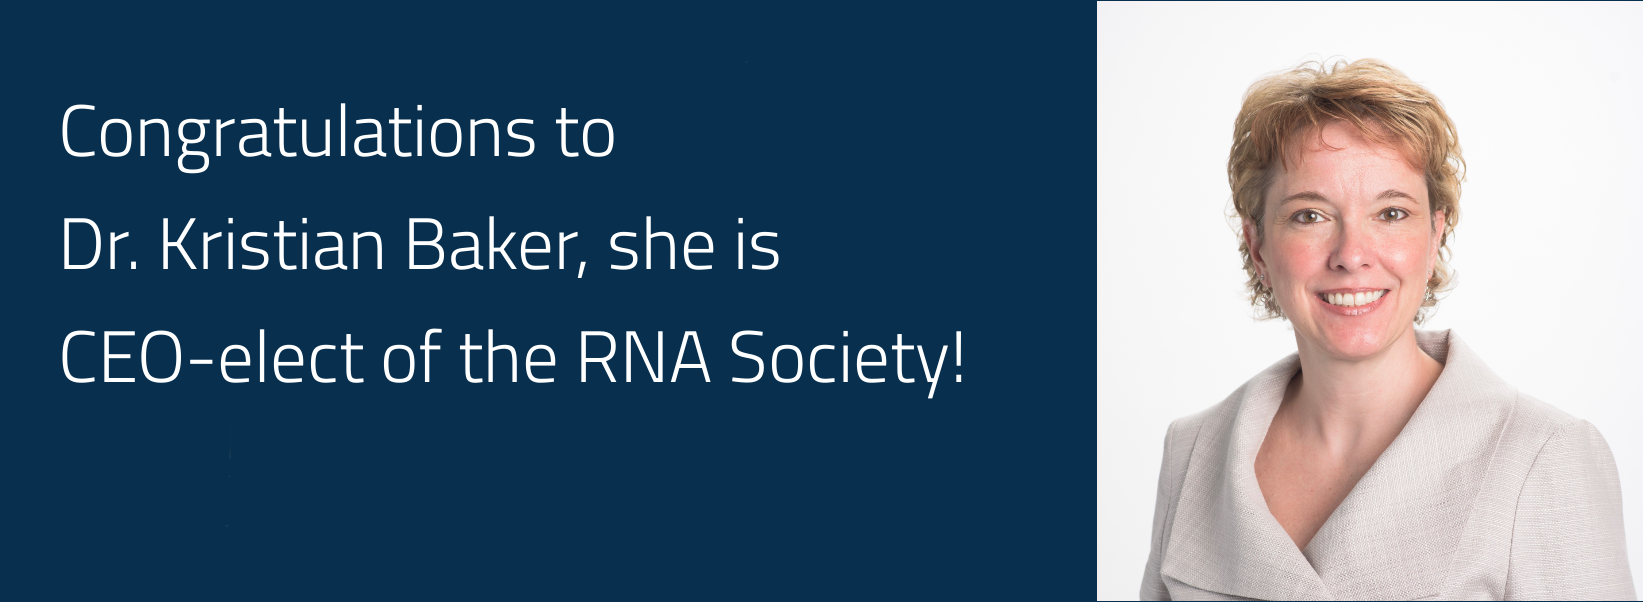 Congratulations to Dr. Kristian, She is CEO-elect of the RNA Society!